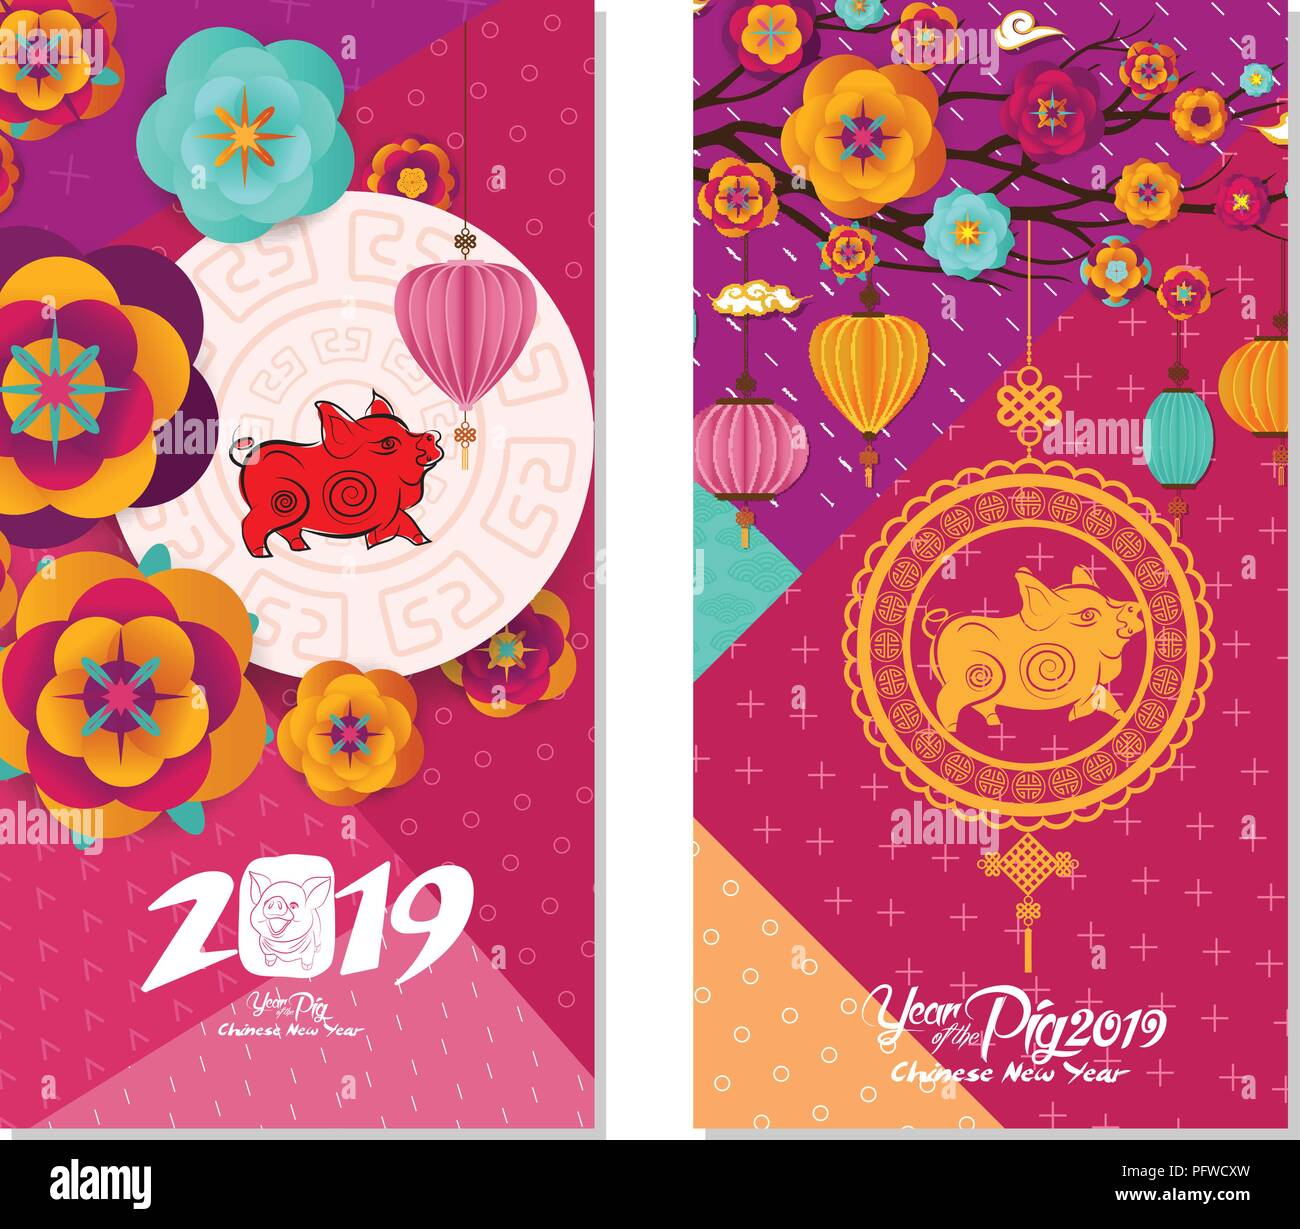 2019 chinese new year greeting card two sides poster flyer or invitation design with paper cut sakura flowers and pig